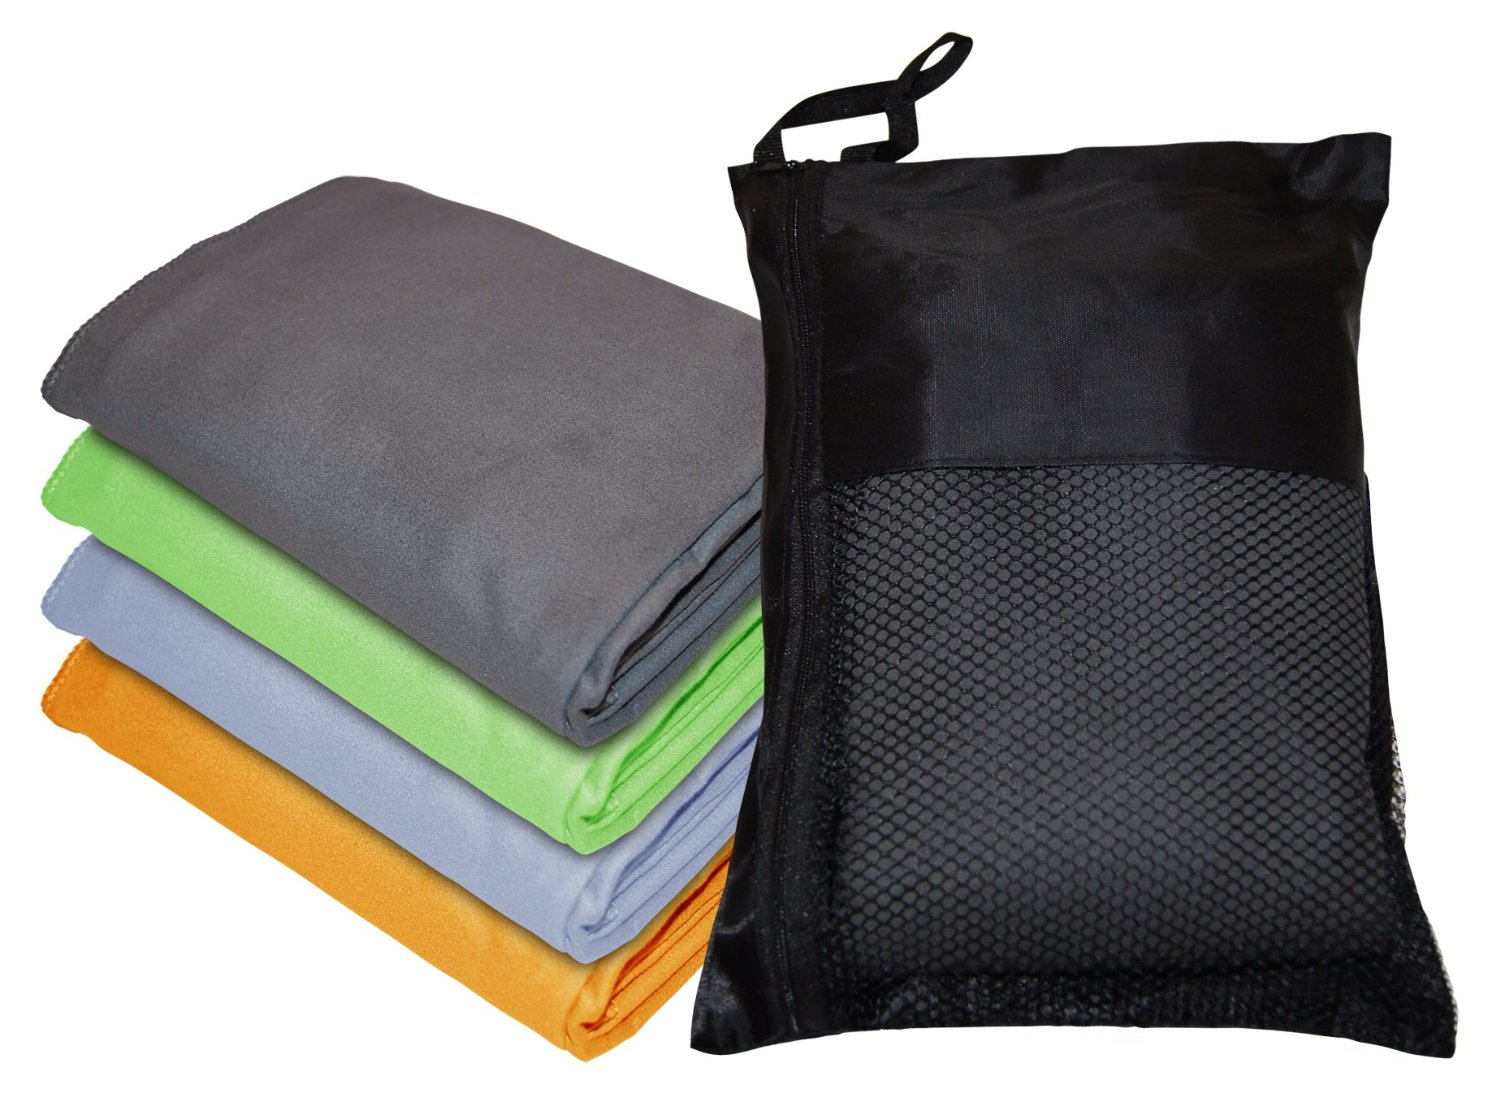 microfiber towel for camping